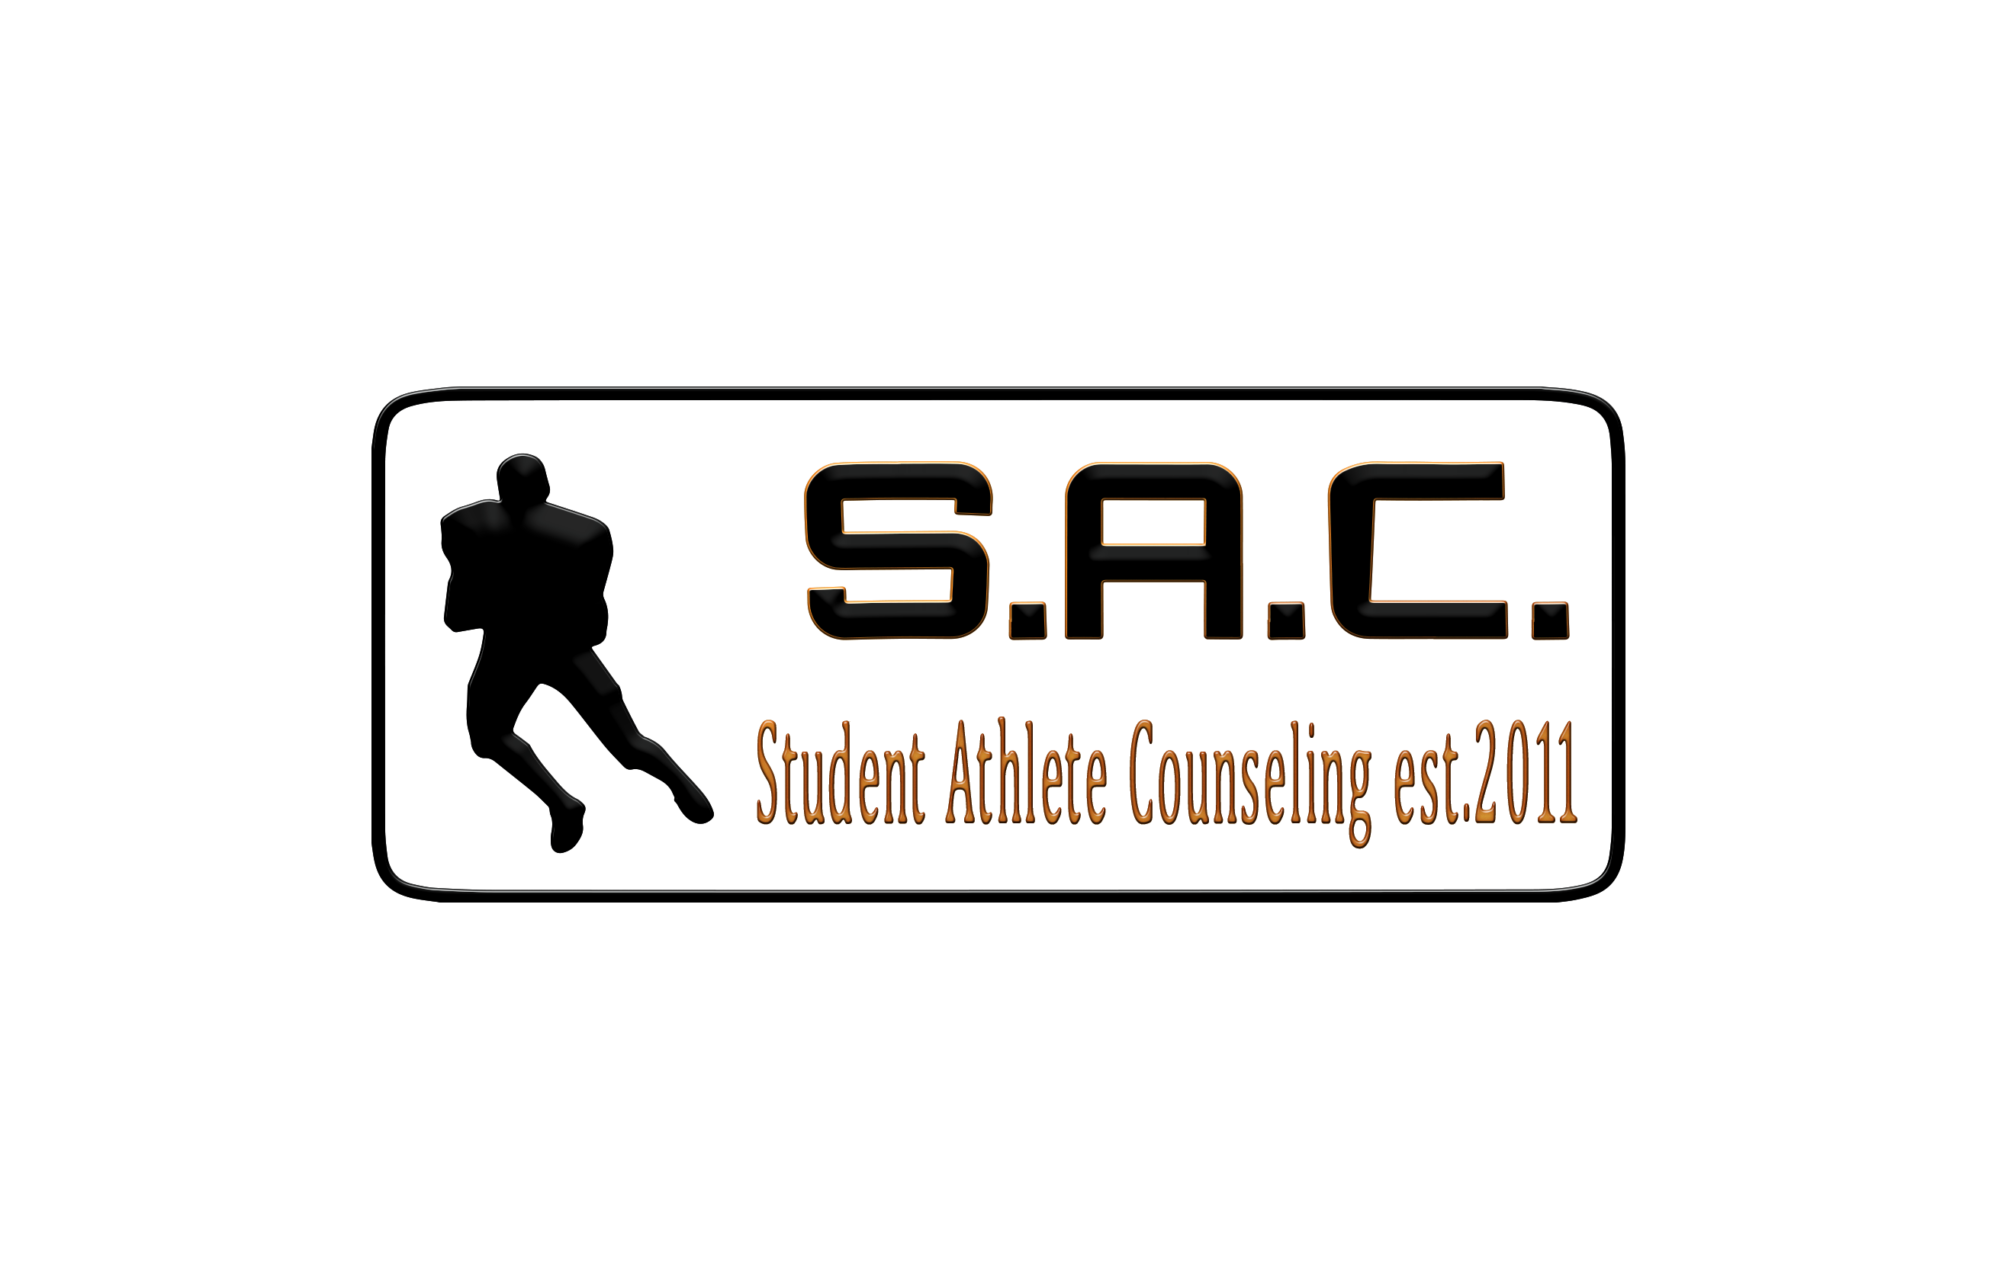 Student Athlete Counseling